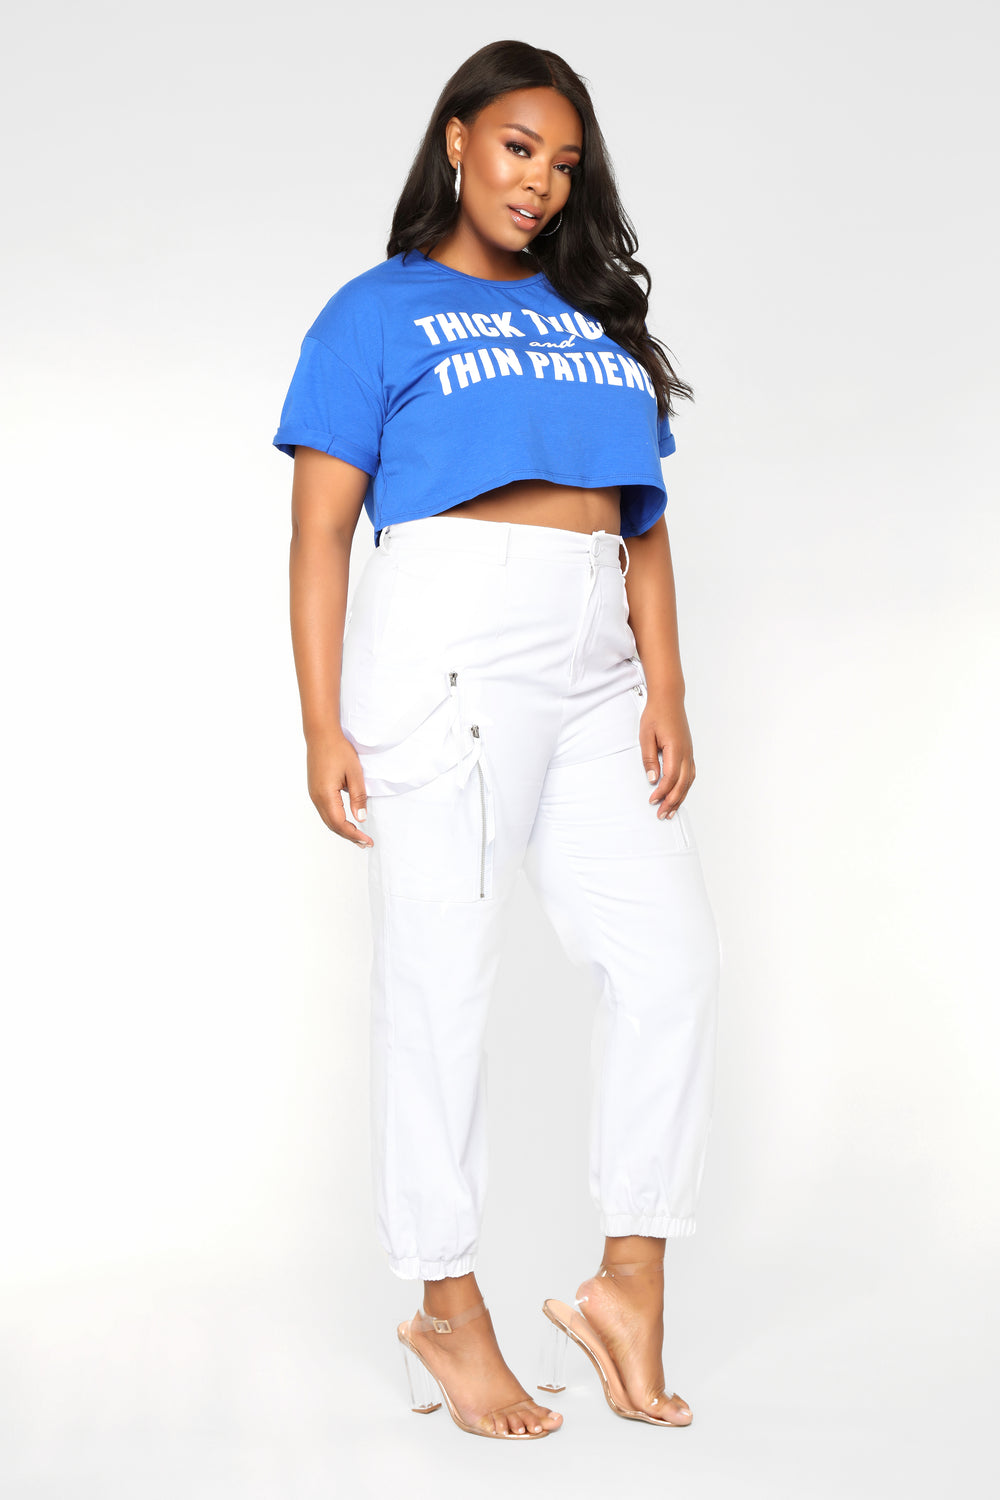 Slim Thick Crop Top - Royal